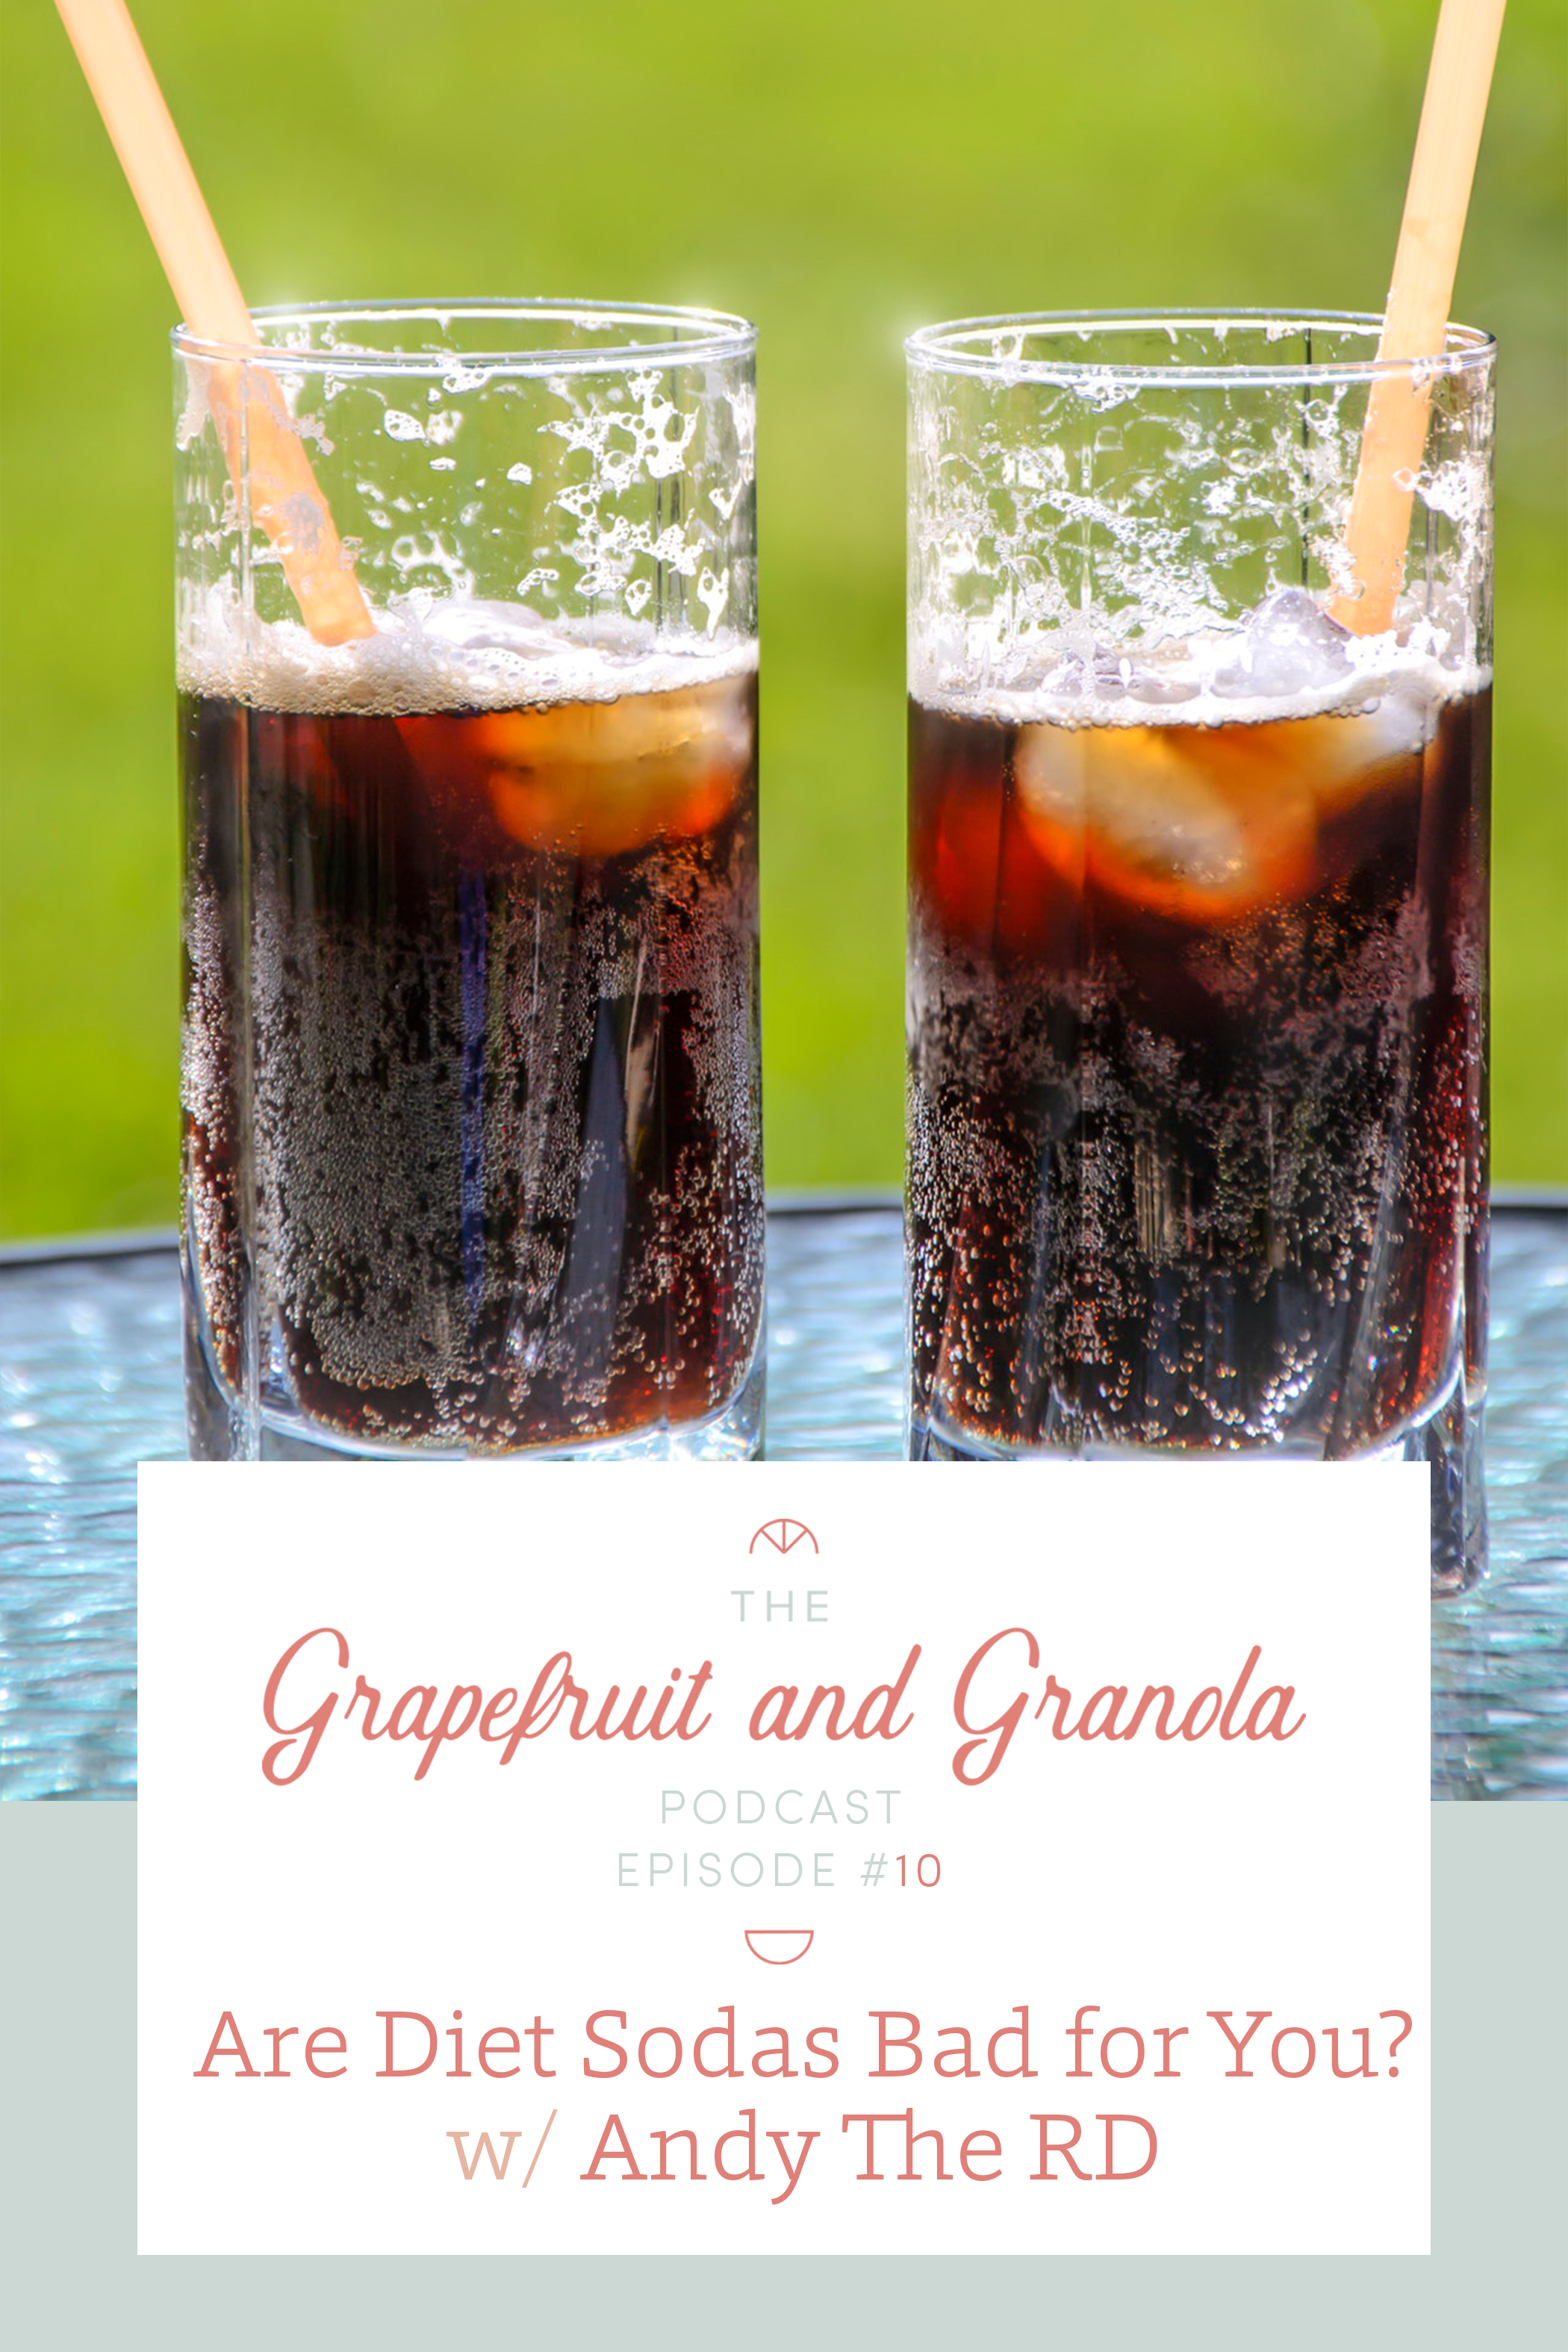 Is Diet Soda Bad for You? (Episode 10: Grapefruit & Granola Podcast)